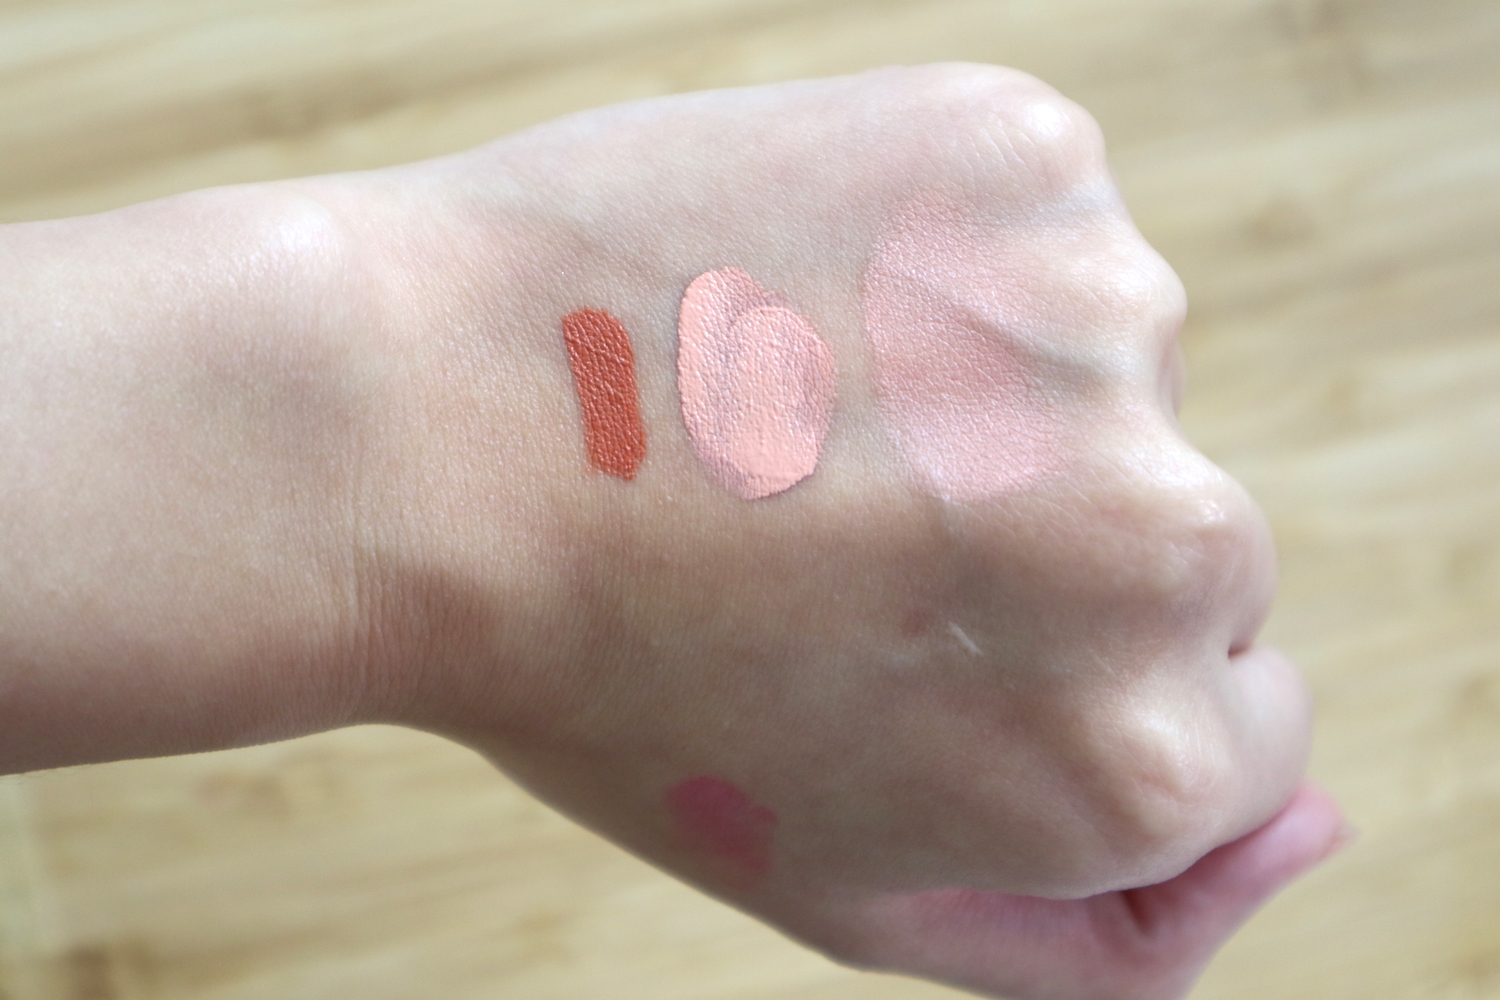 Swatches, from left: LA Girl HD Pro Conceal in Orange, Makeup World Cover Up Corrector in Orange, and Club Clio Kill Cover Pro Artist Liquid Corrector